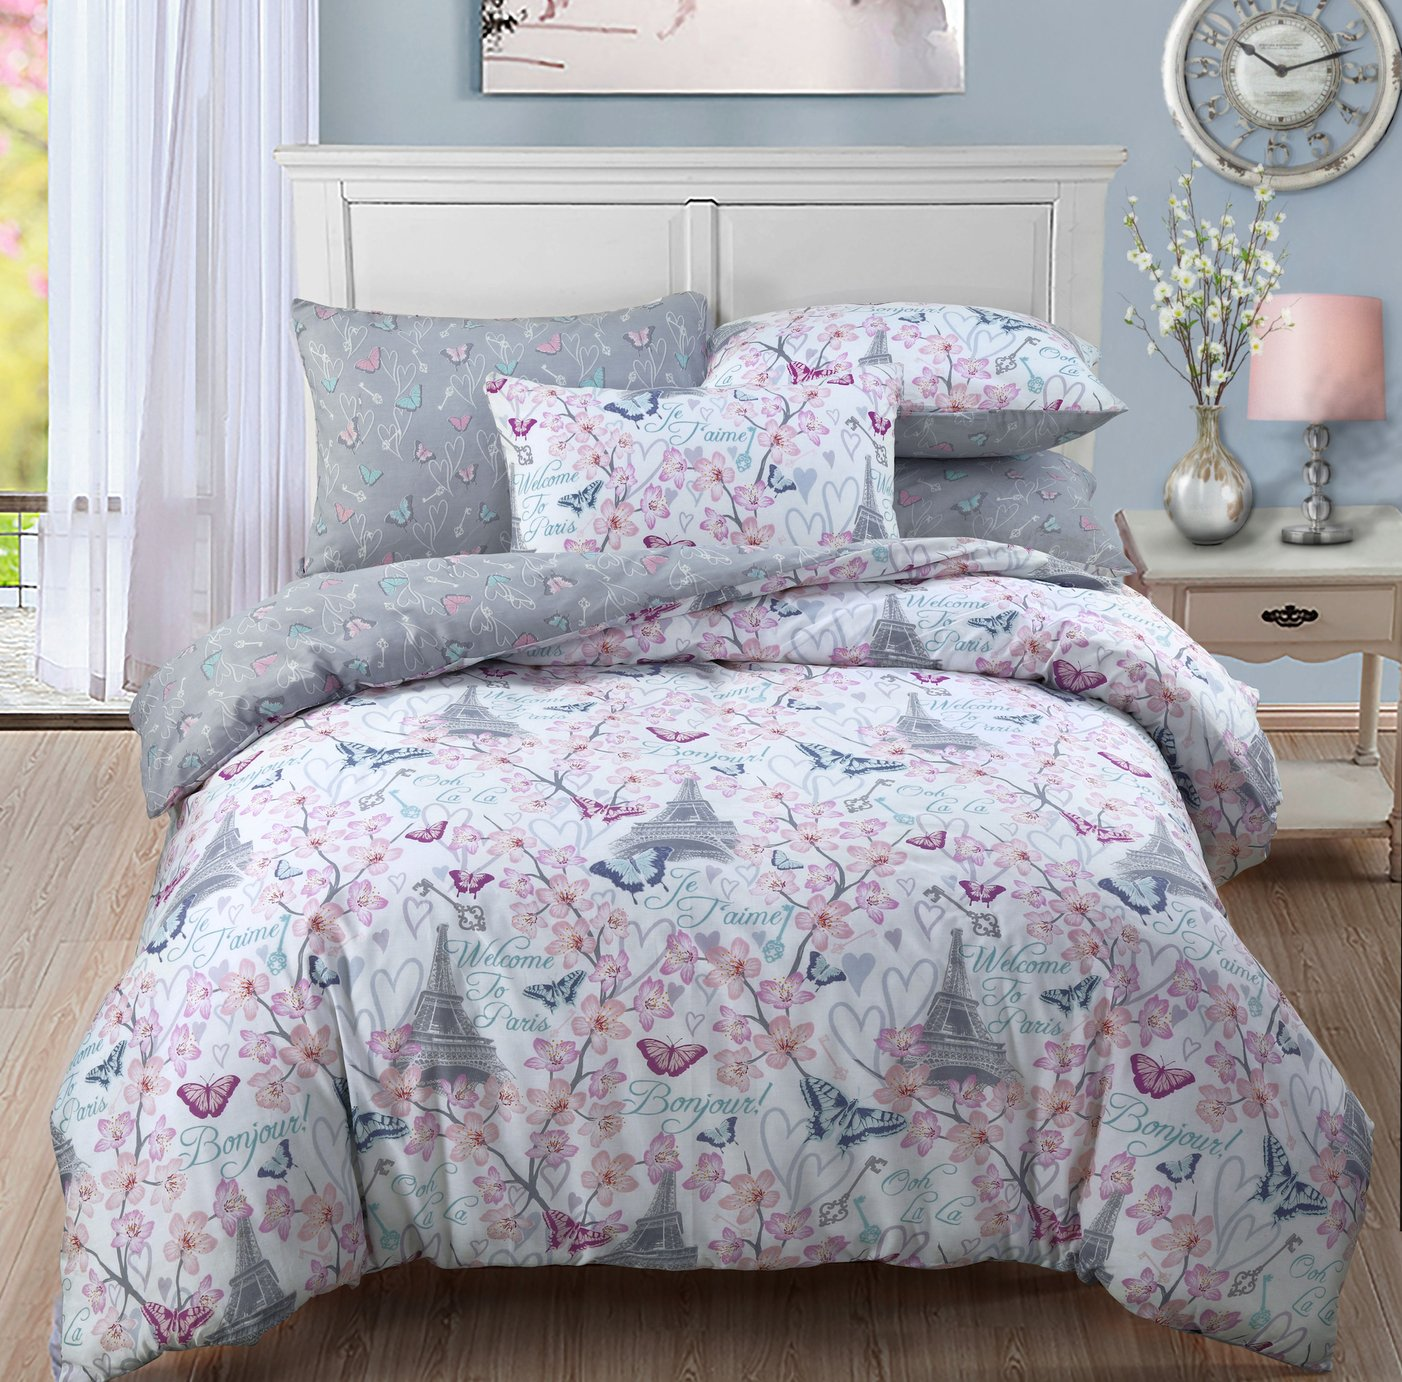 Argos Home Paris Blossom Bedding Set - Kingsize